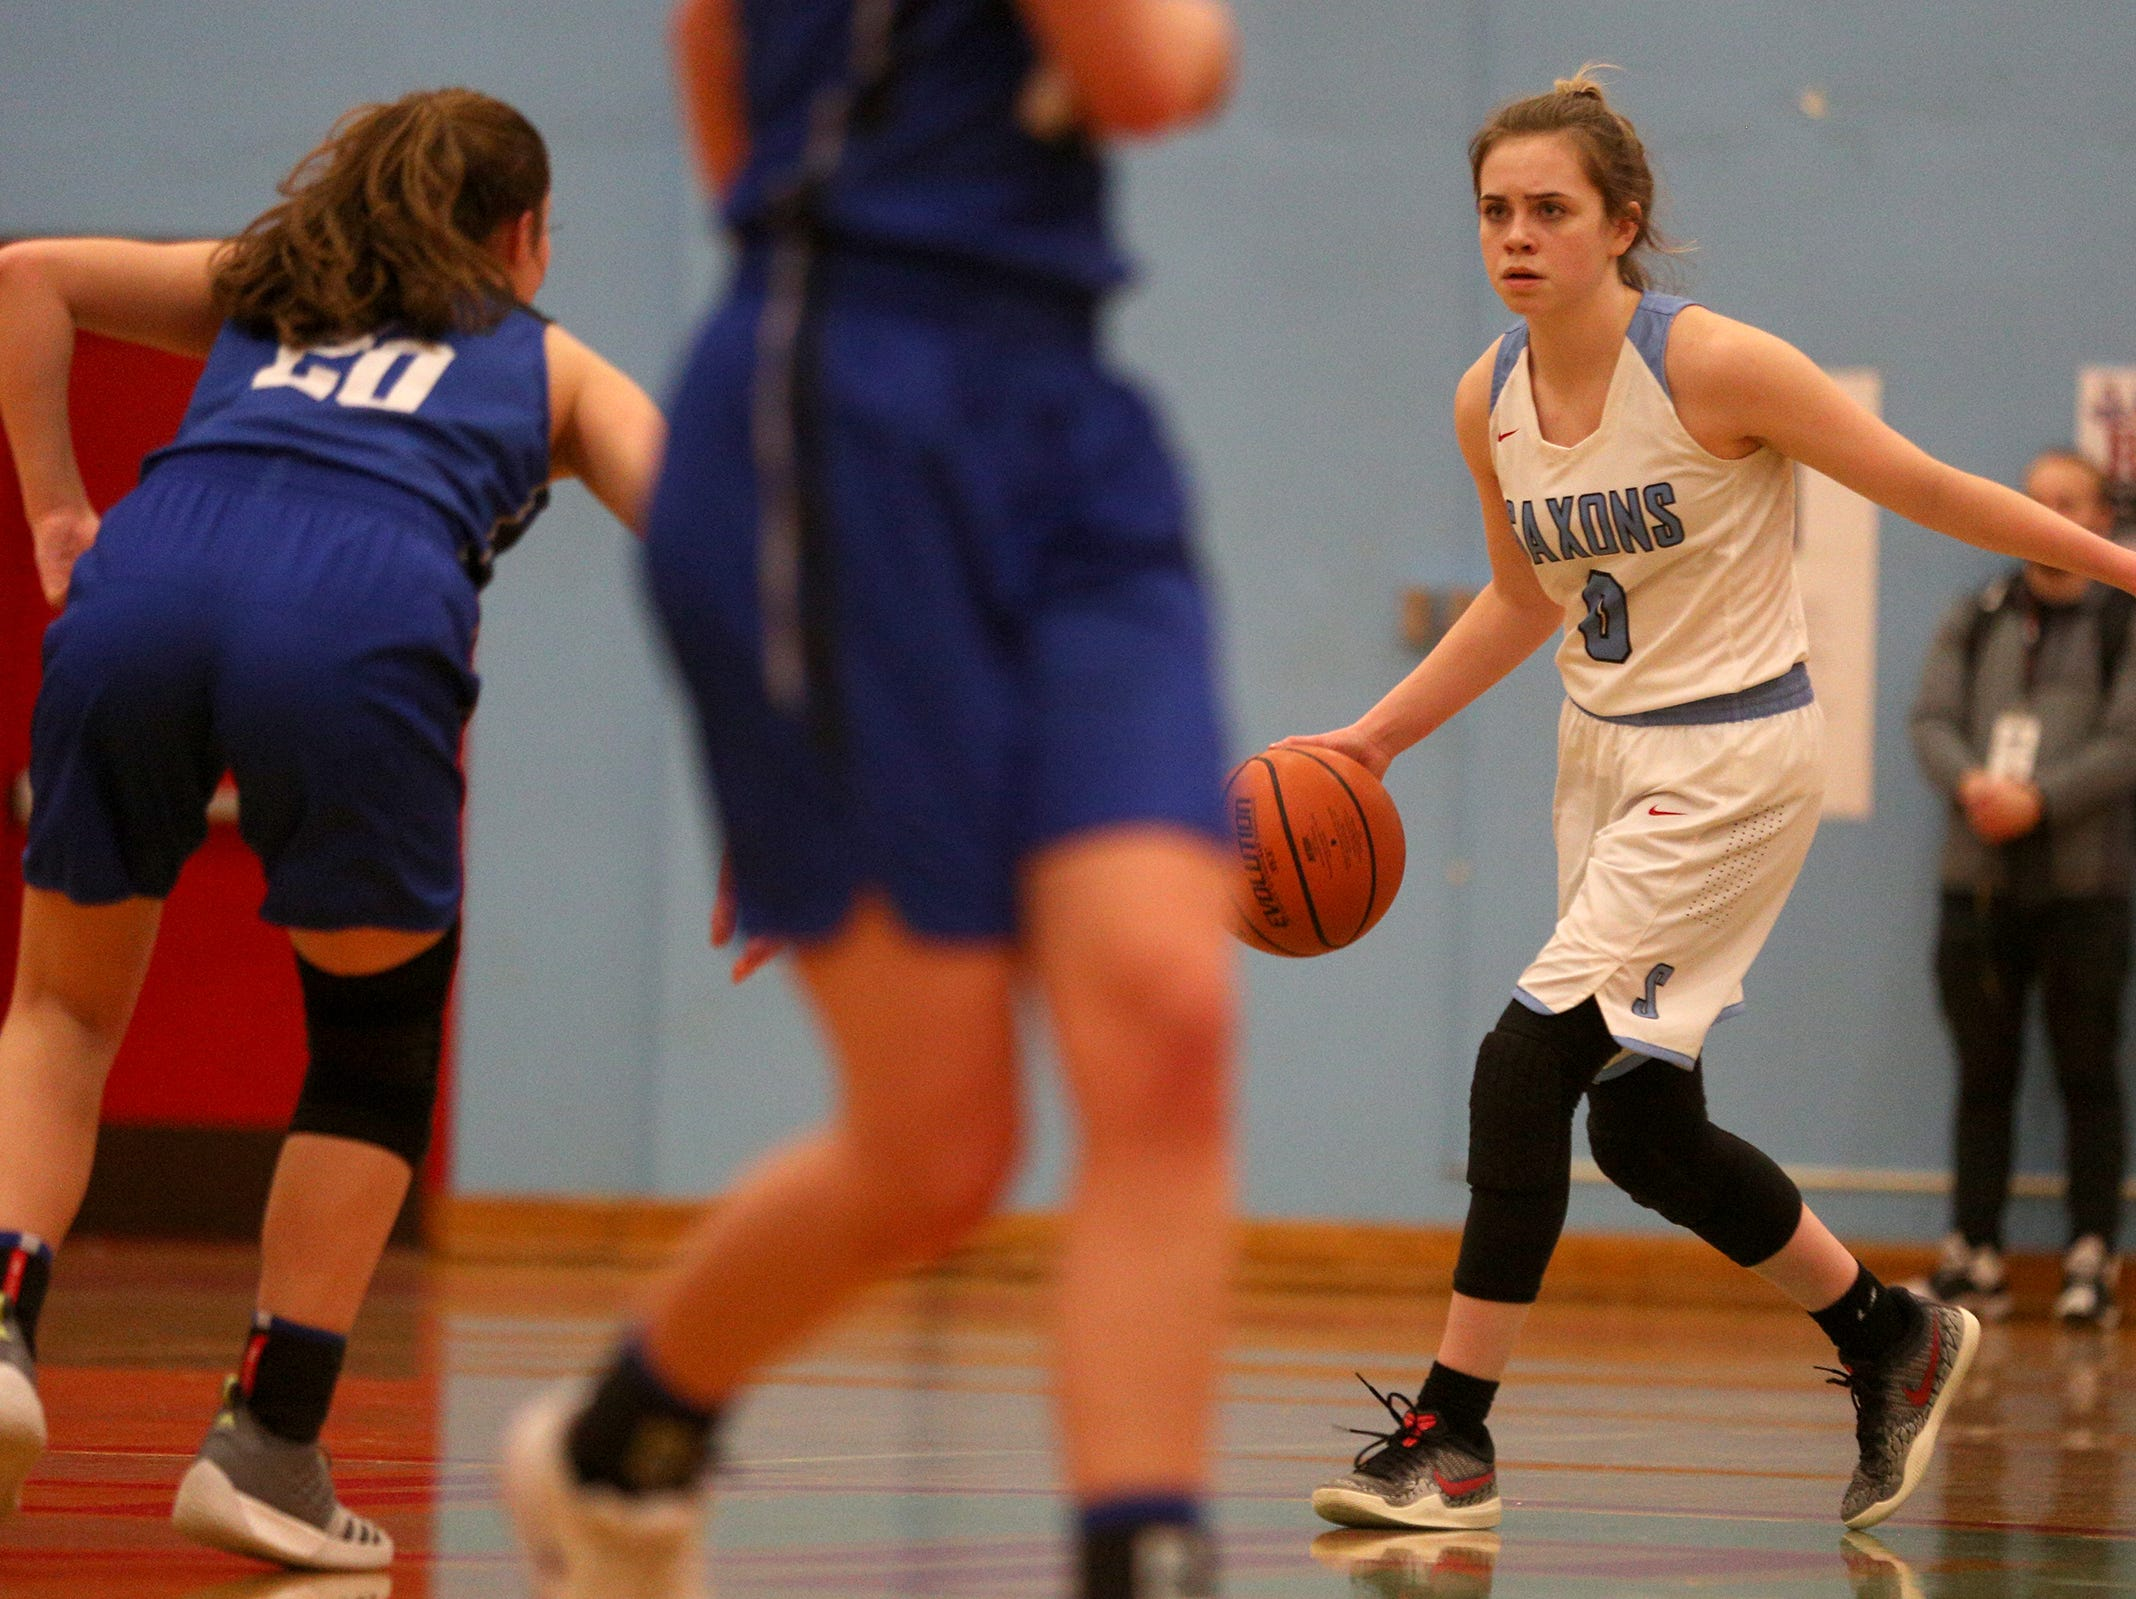 South Salem's Ellyson Haytas (0) looks for an opening during the South Salem High School girls basketball game against McNary High School in Salem on Thursday, Jan. 31, 2019.